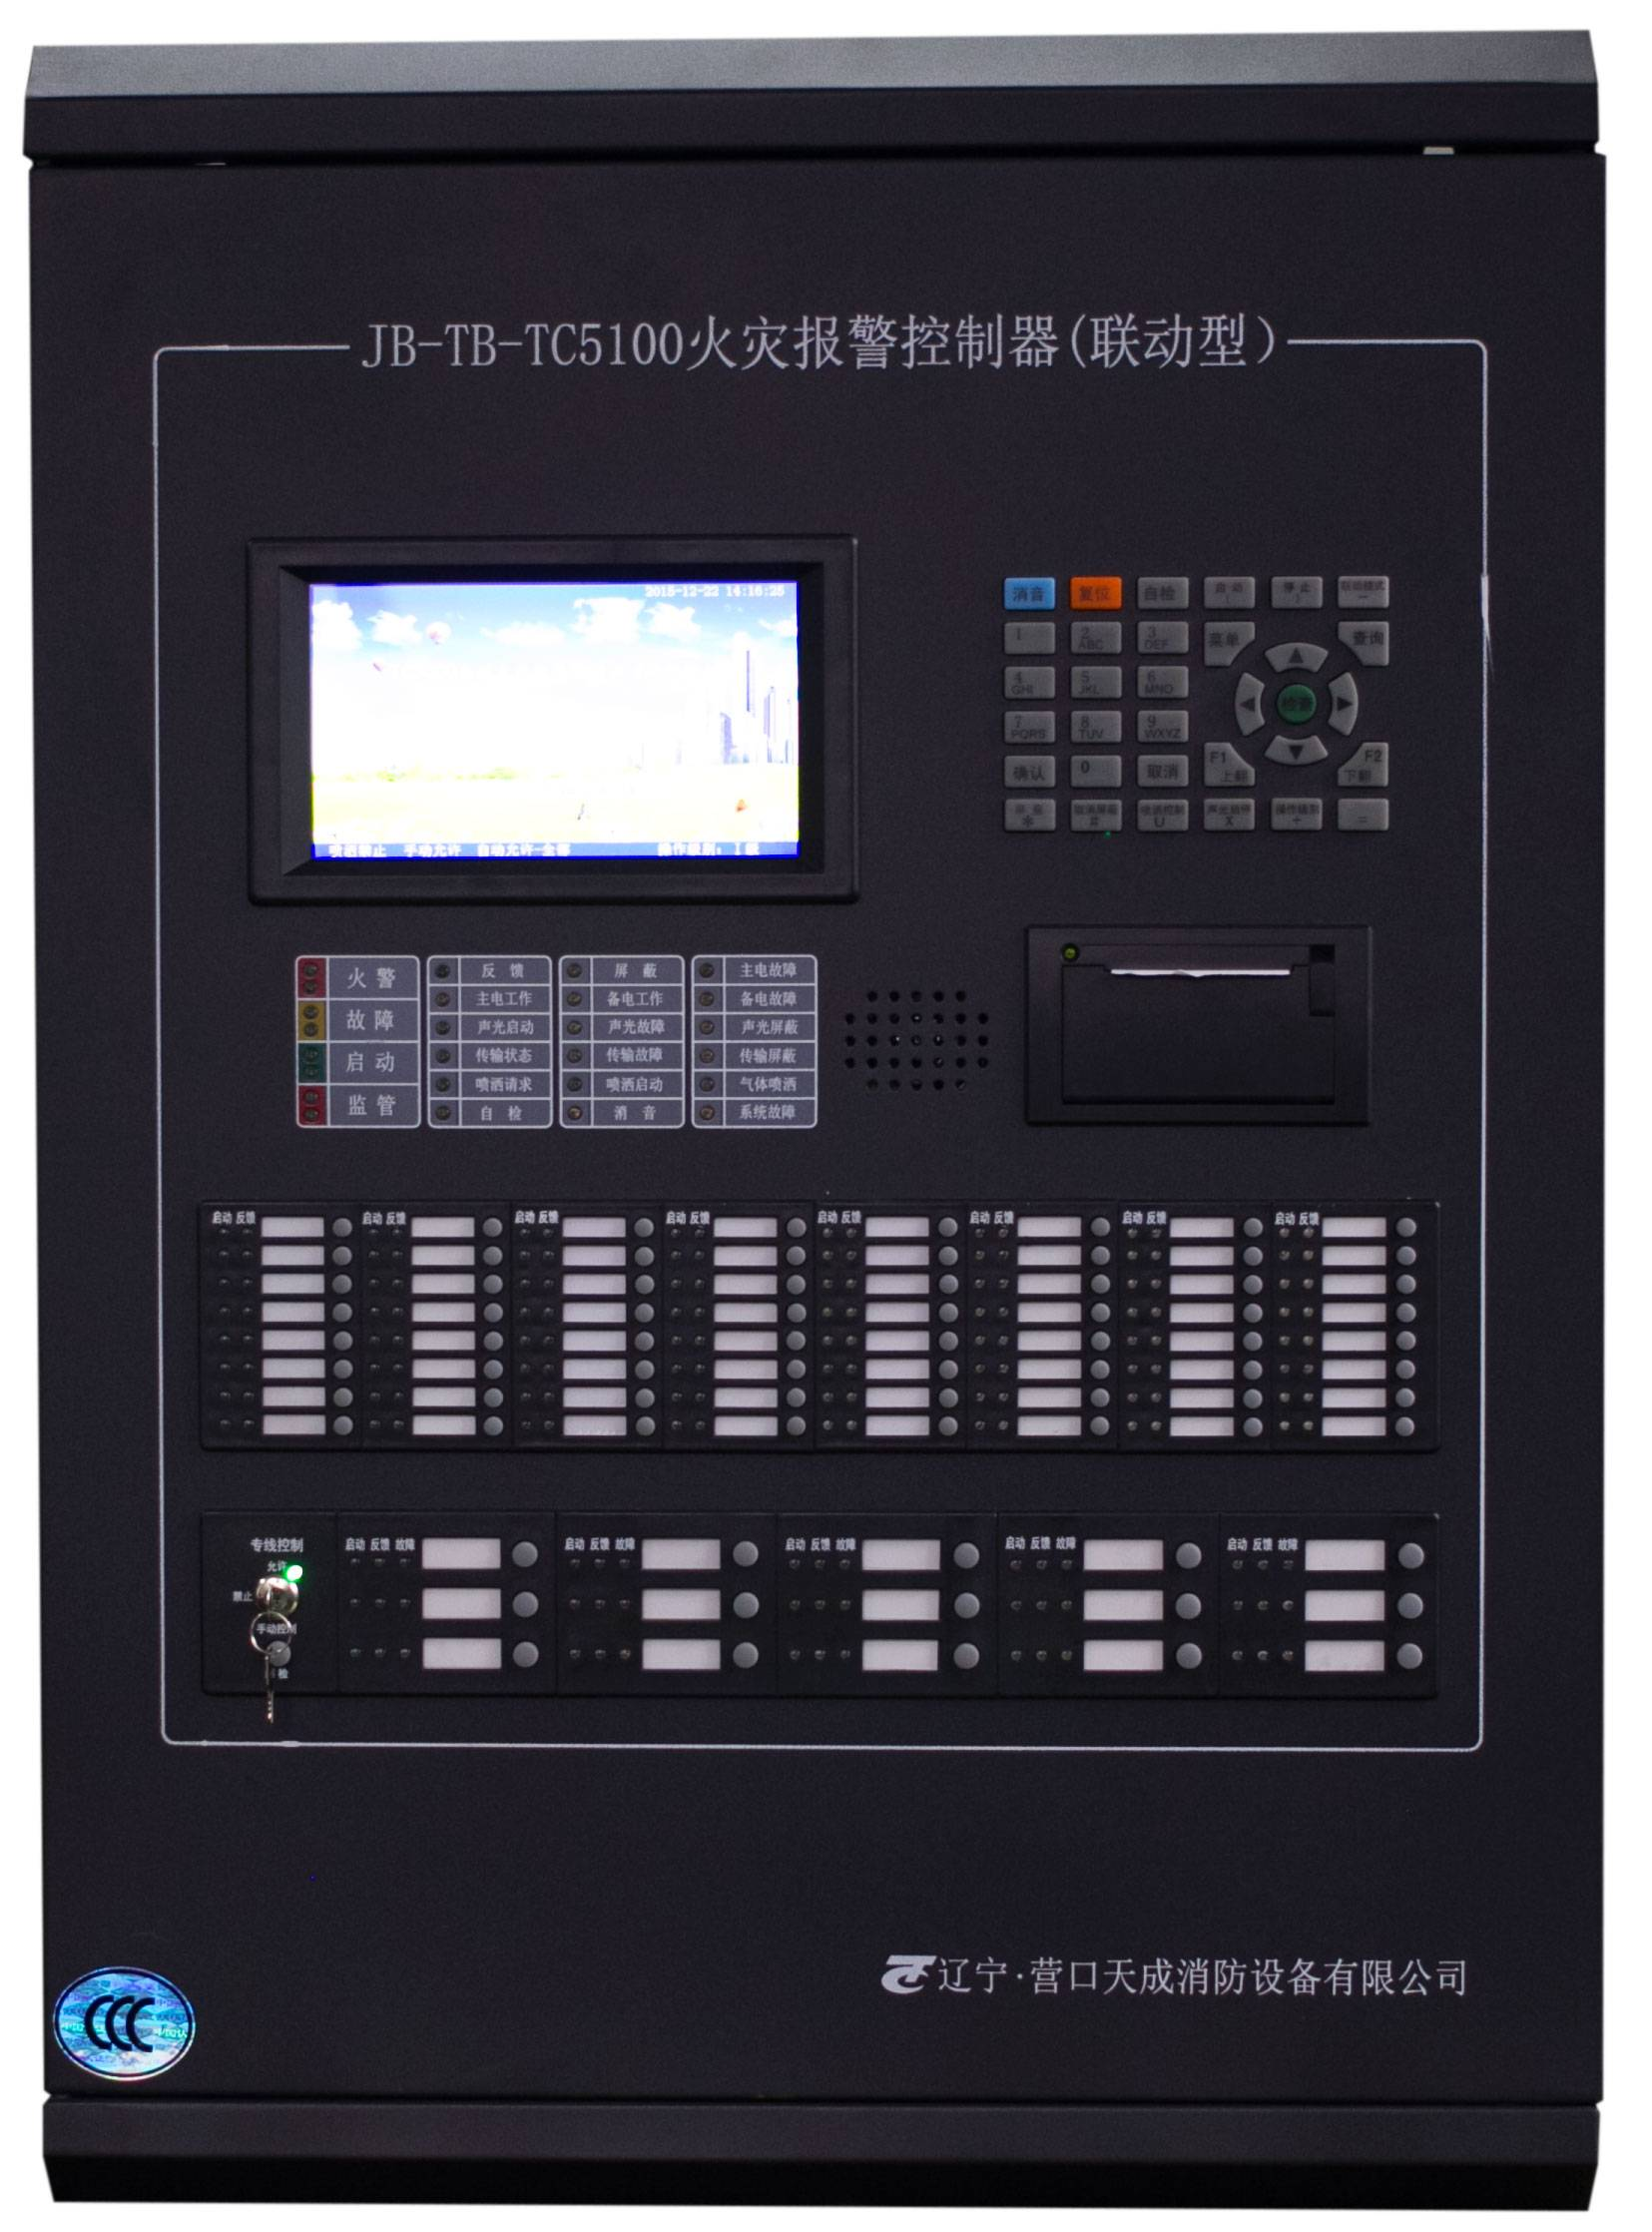 JB-TB-TC5100 Fire Alarm Control Panel (Linkage type)